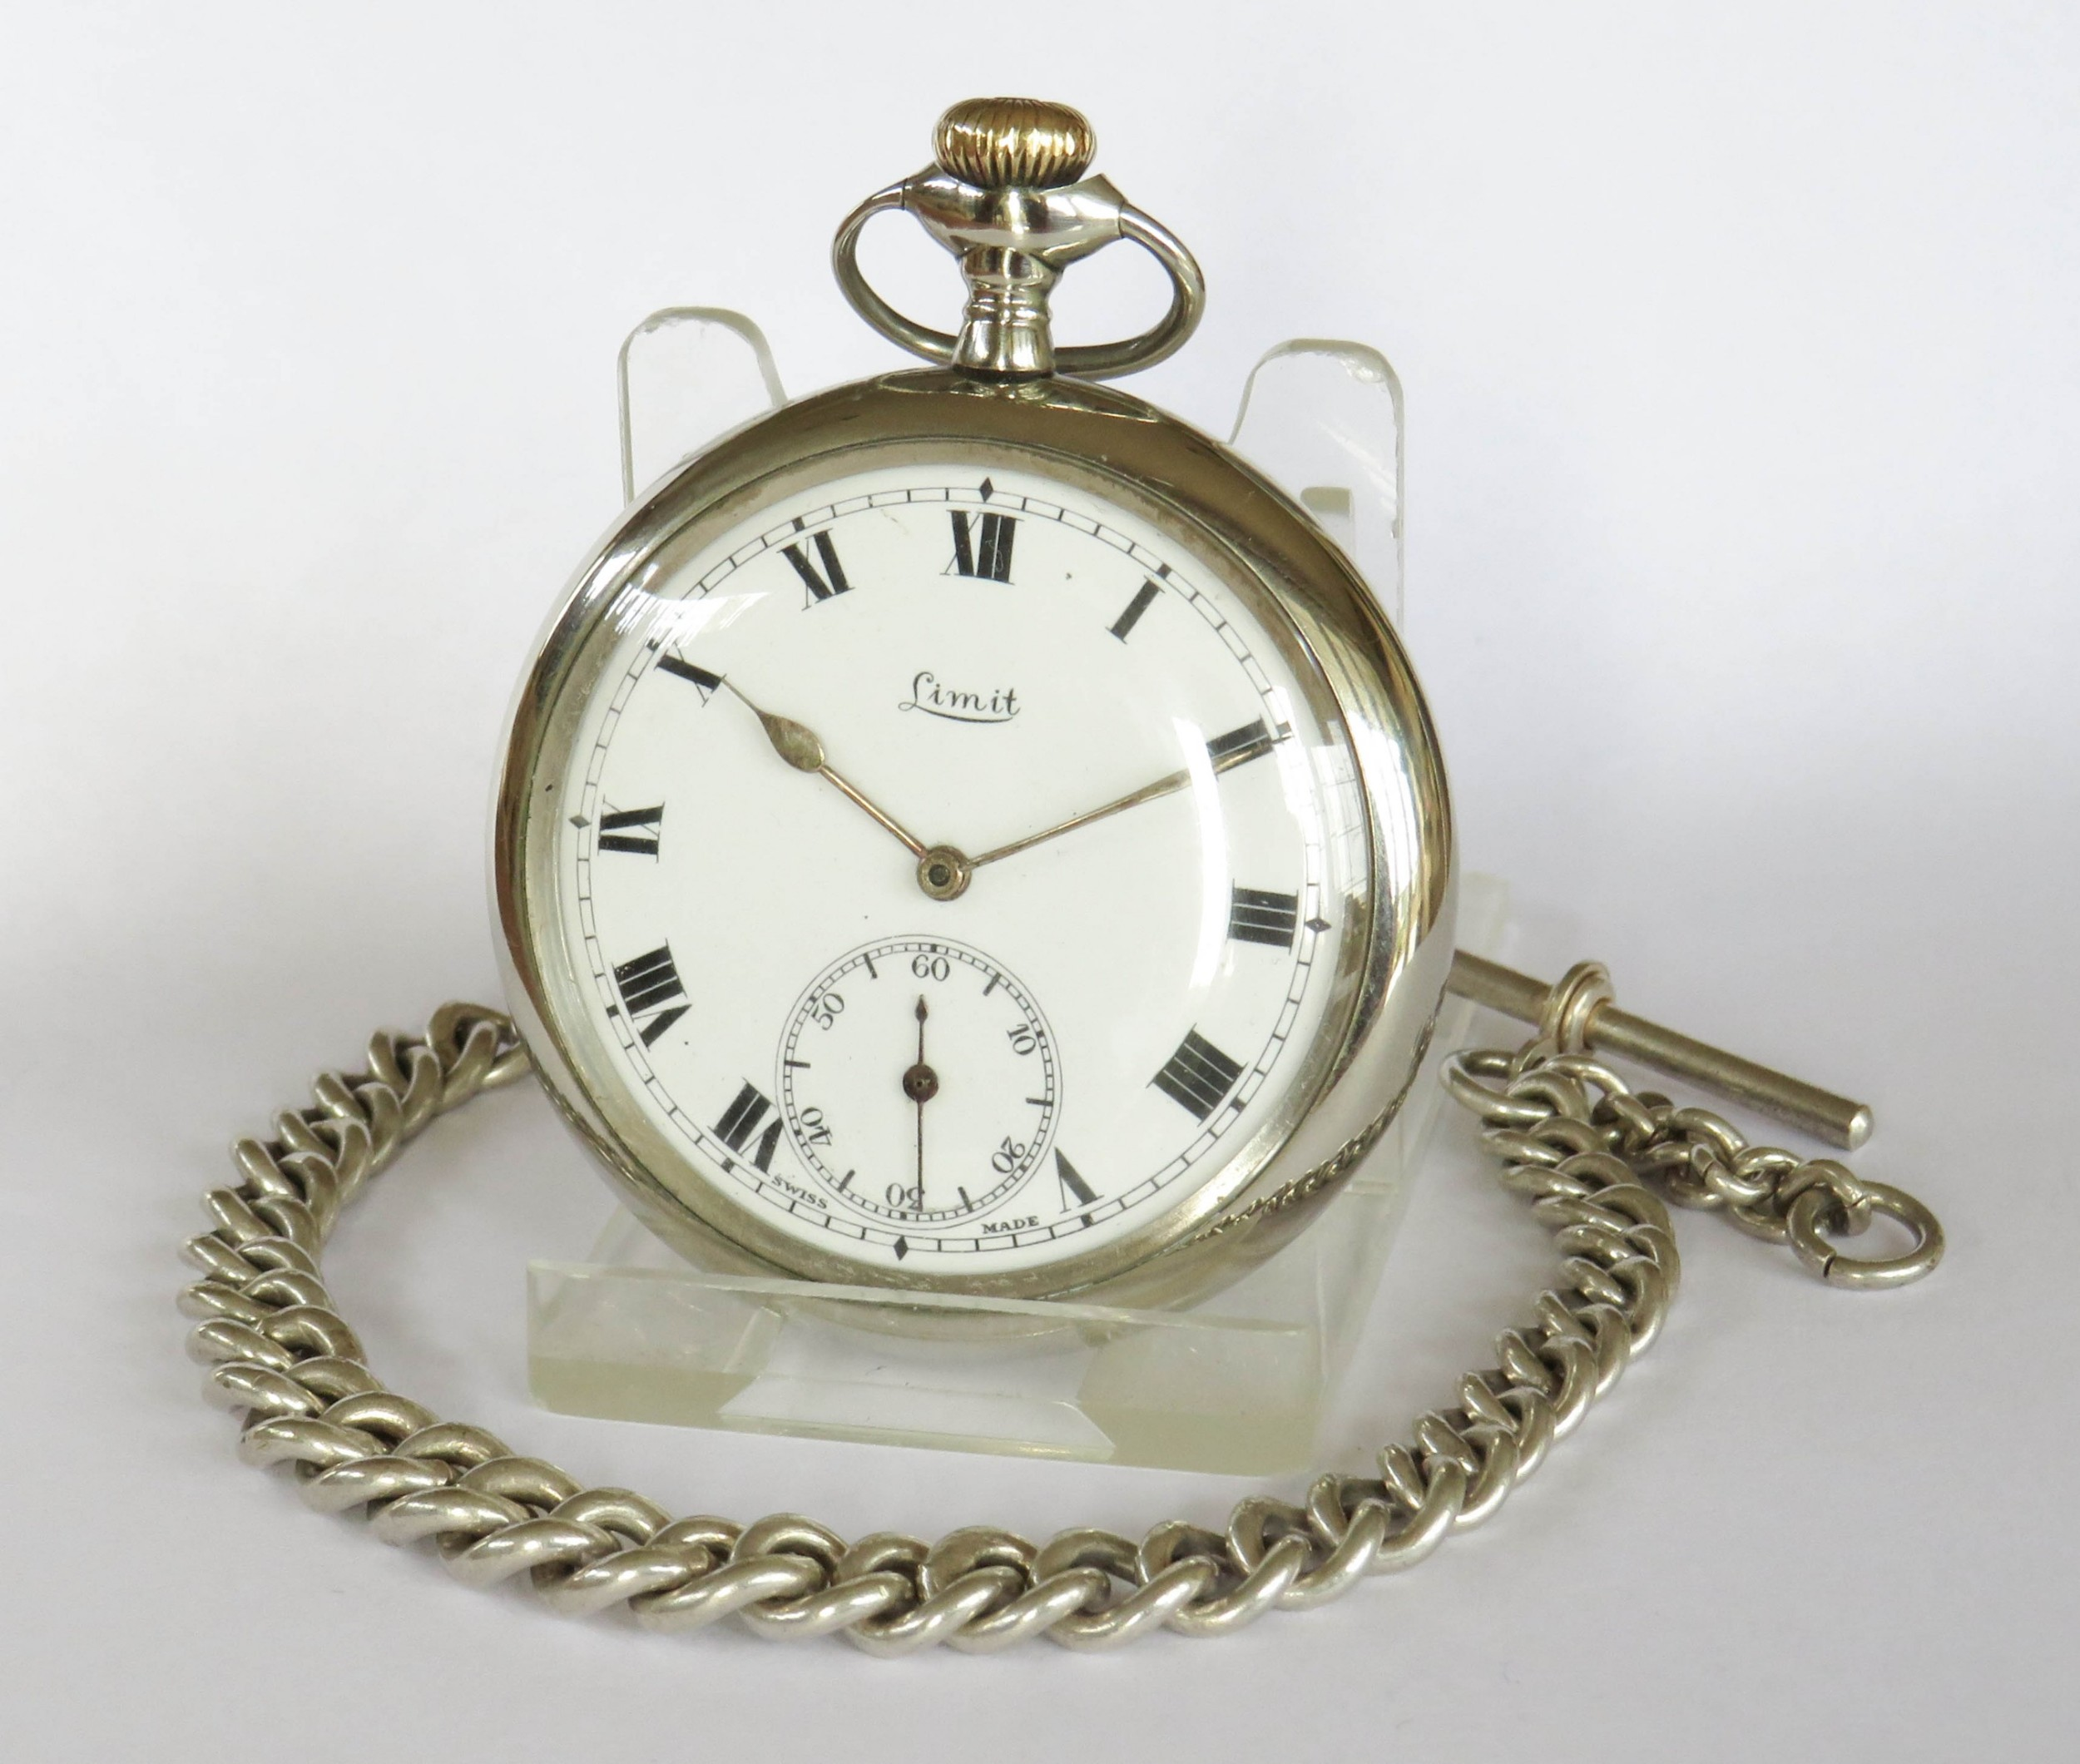 antique limit pocket watch and chain